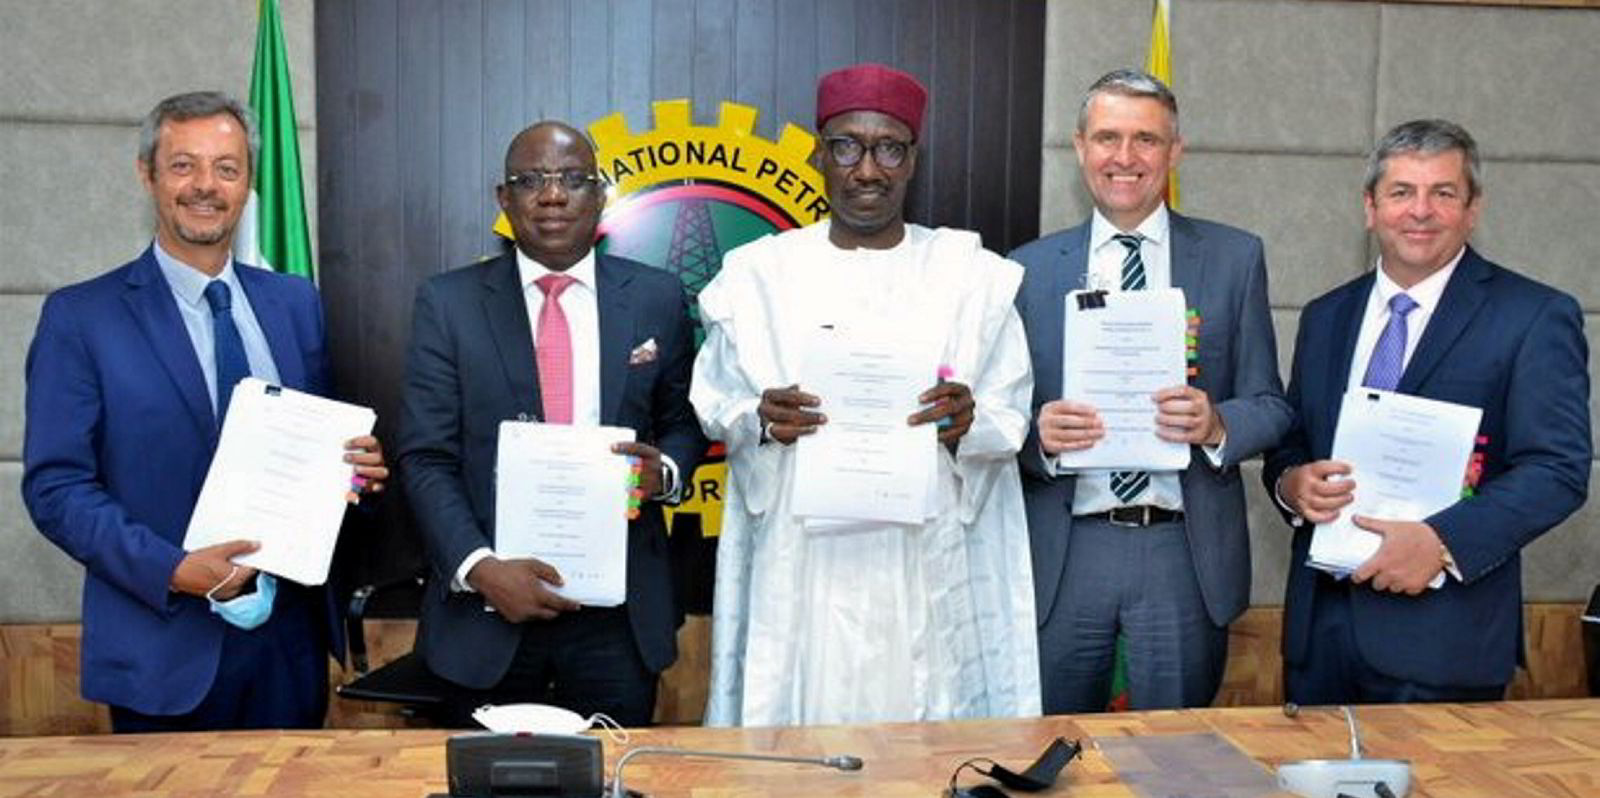 Shell days away from major contractor decision on $10bn deep-water Nigeria  project   Upstream Online